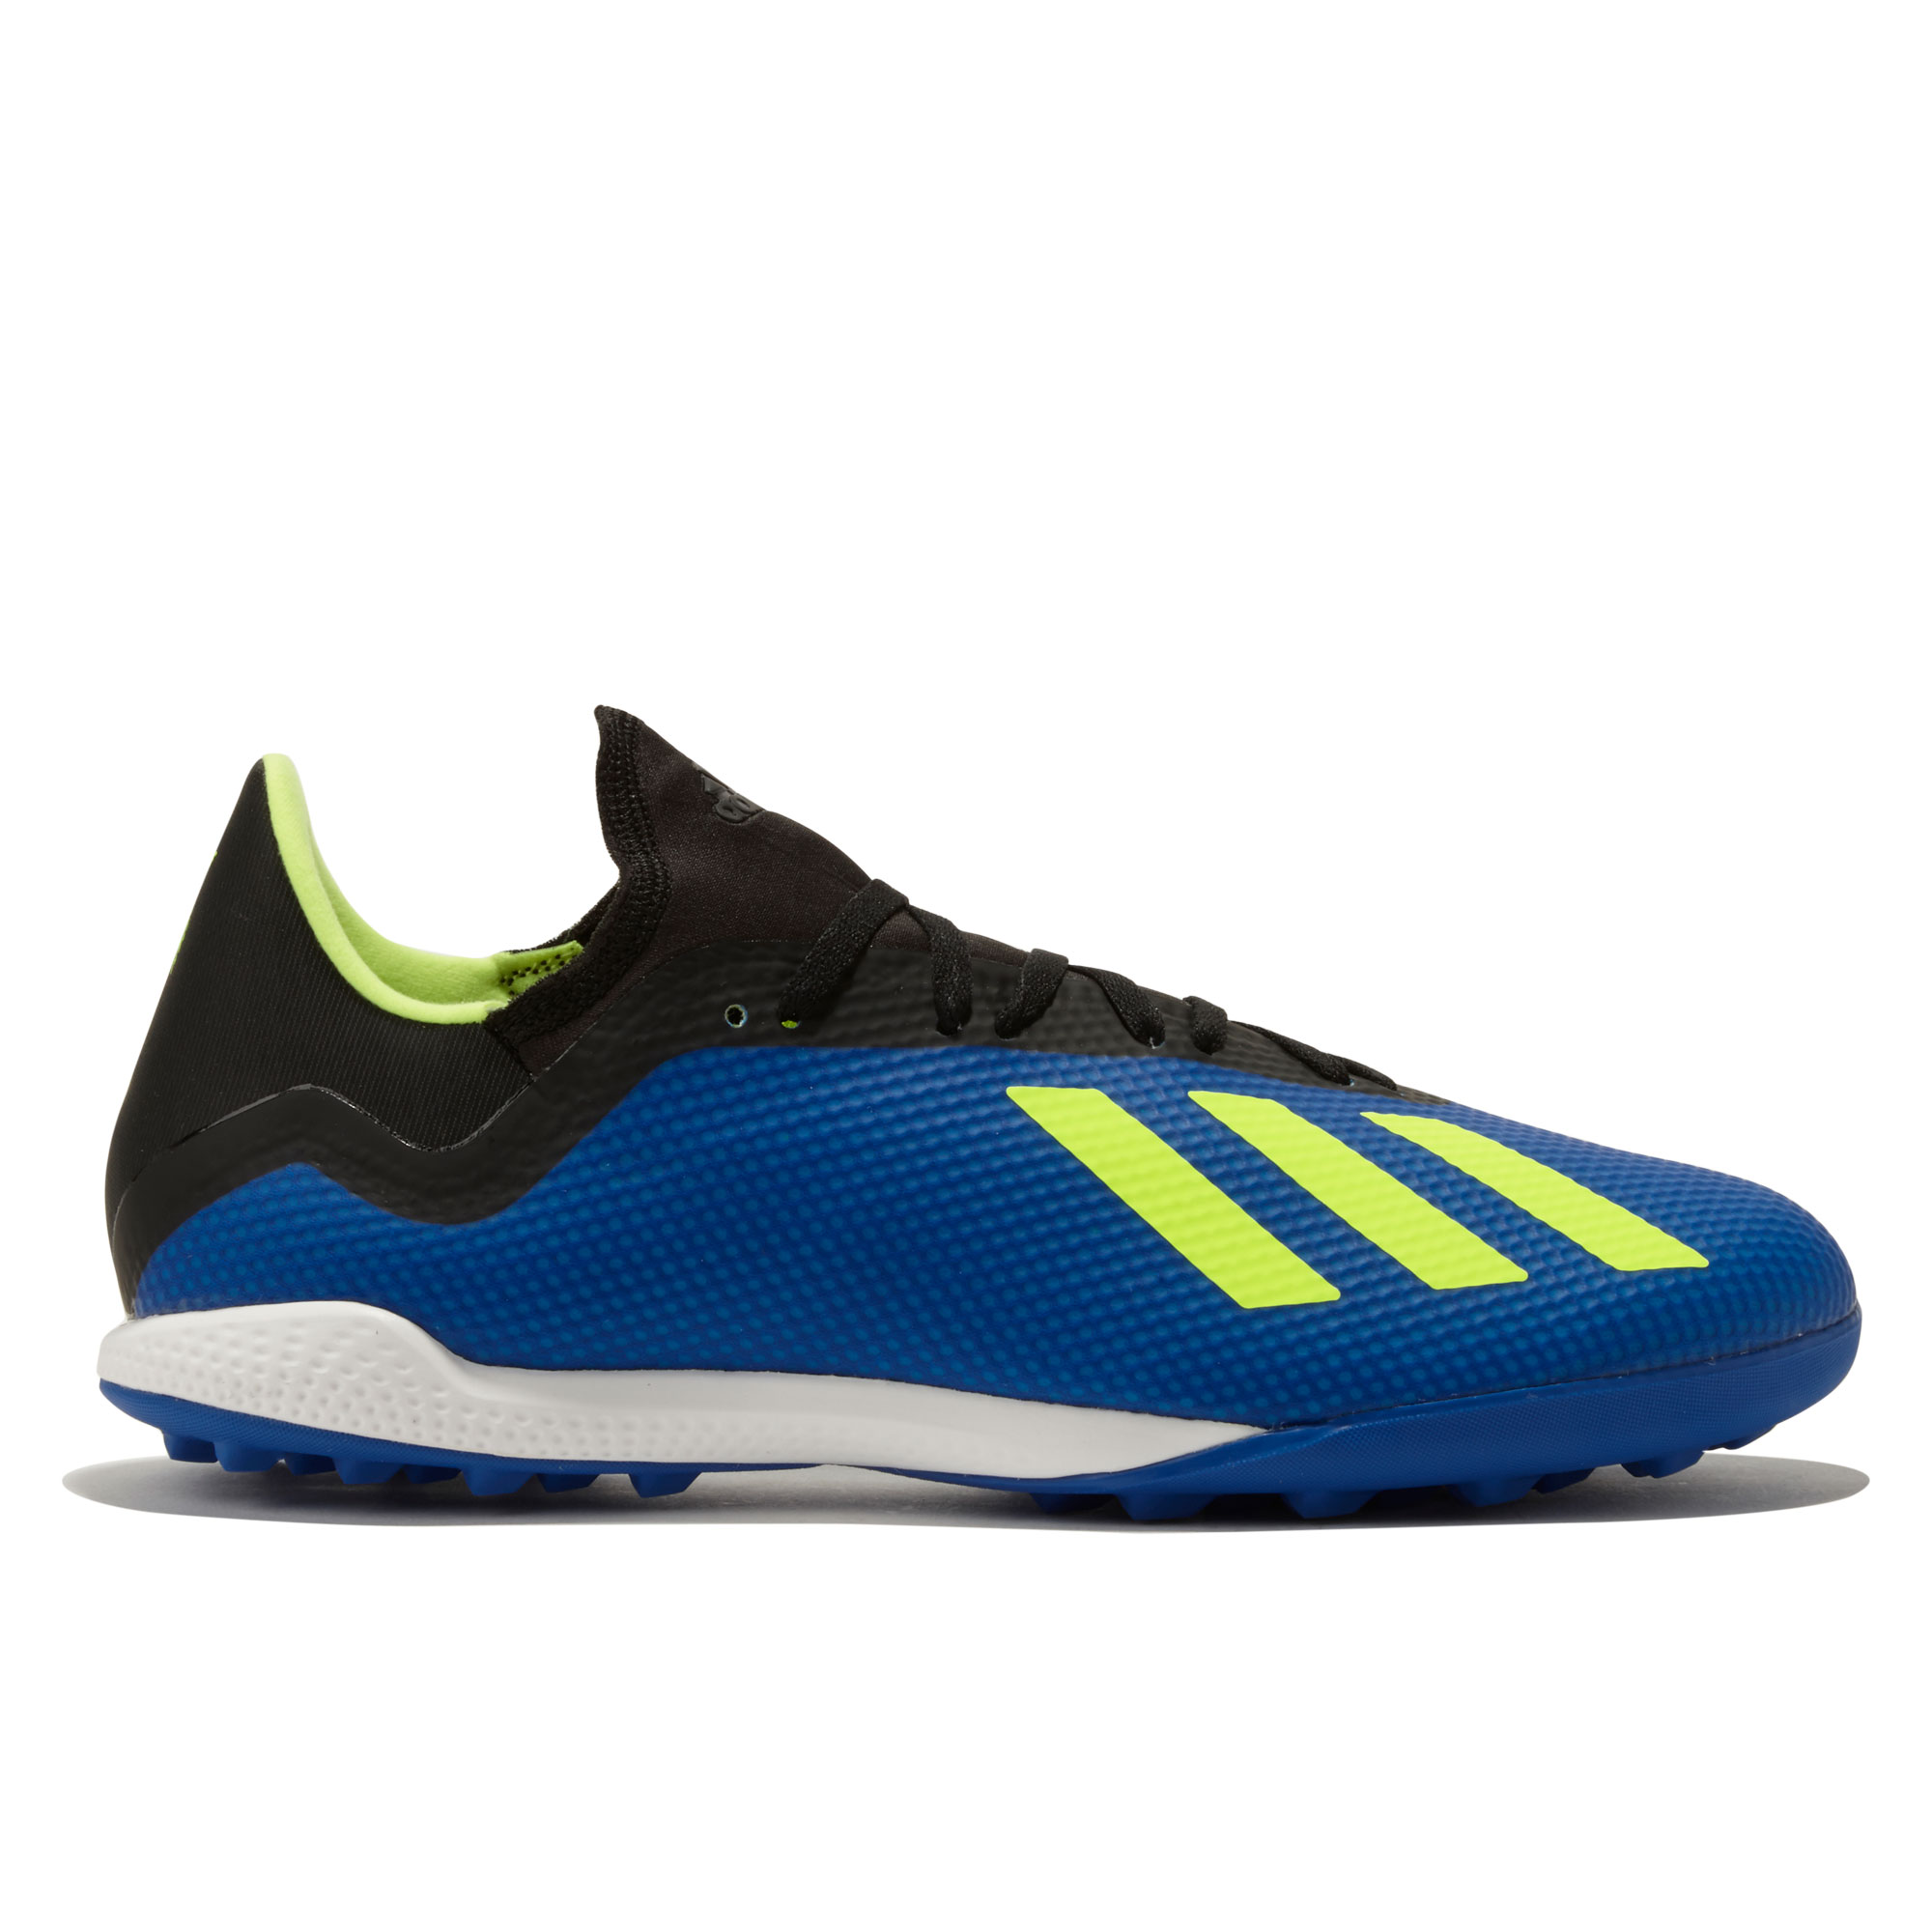 Image of adidas X Tango 18.3 Astroturf Trainers - Blue